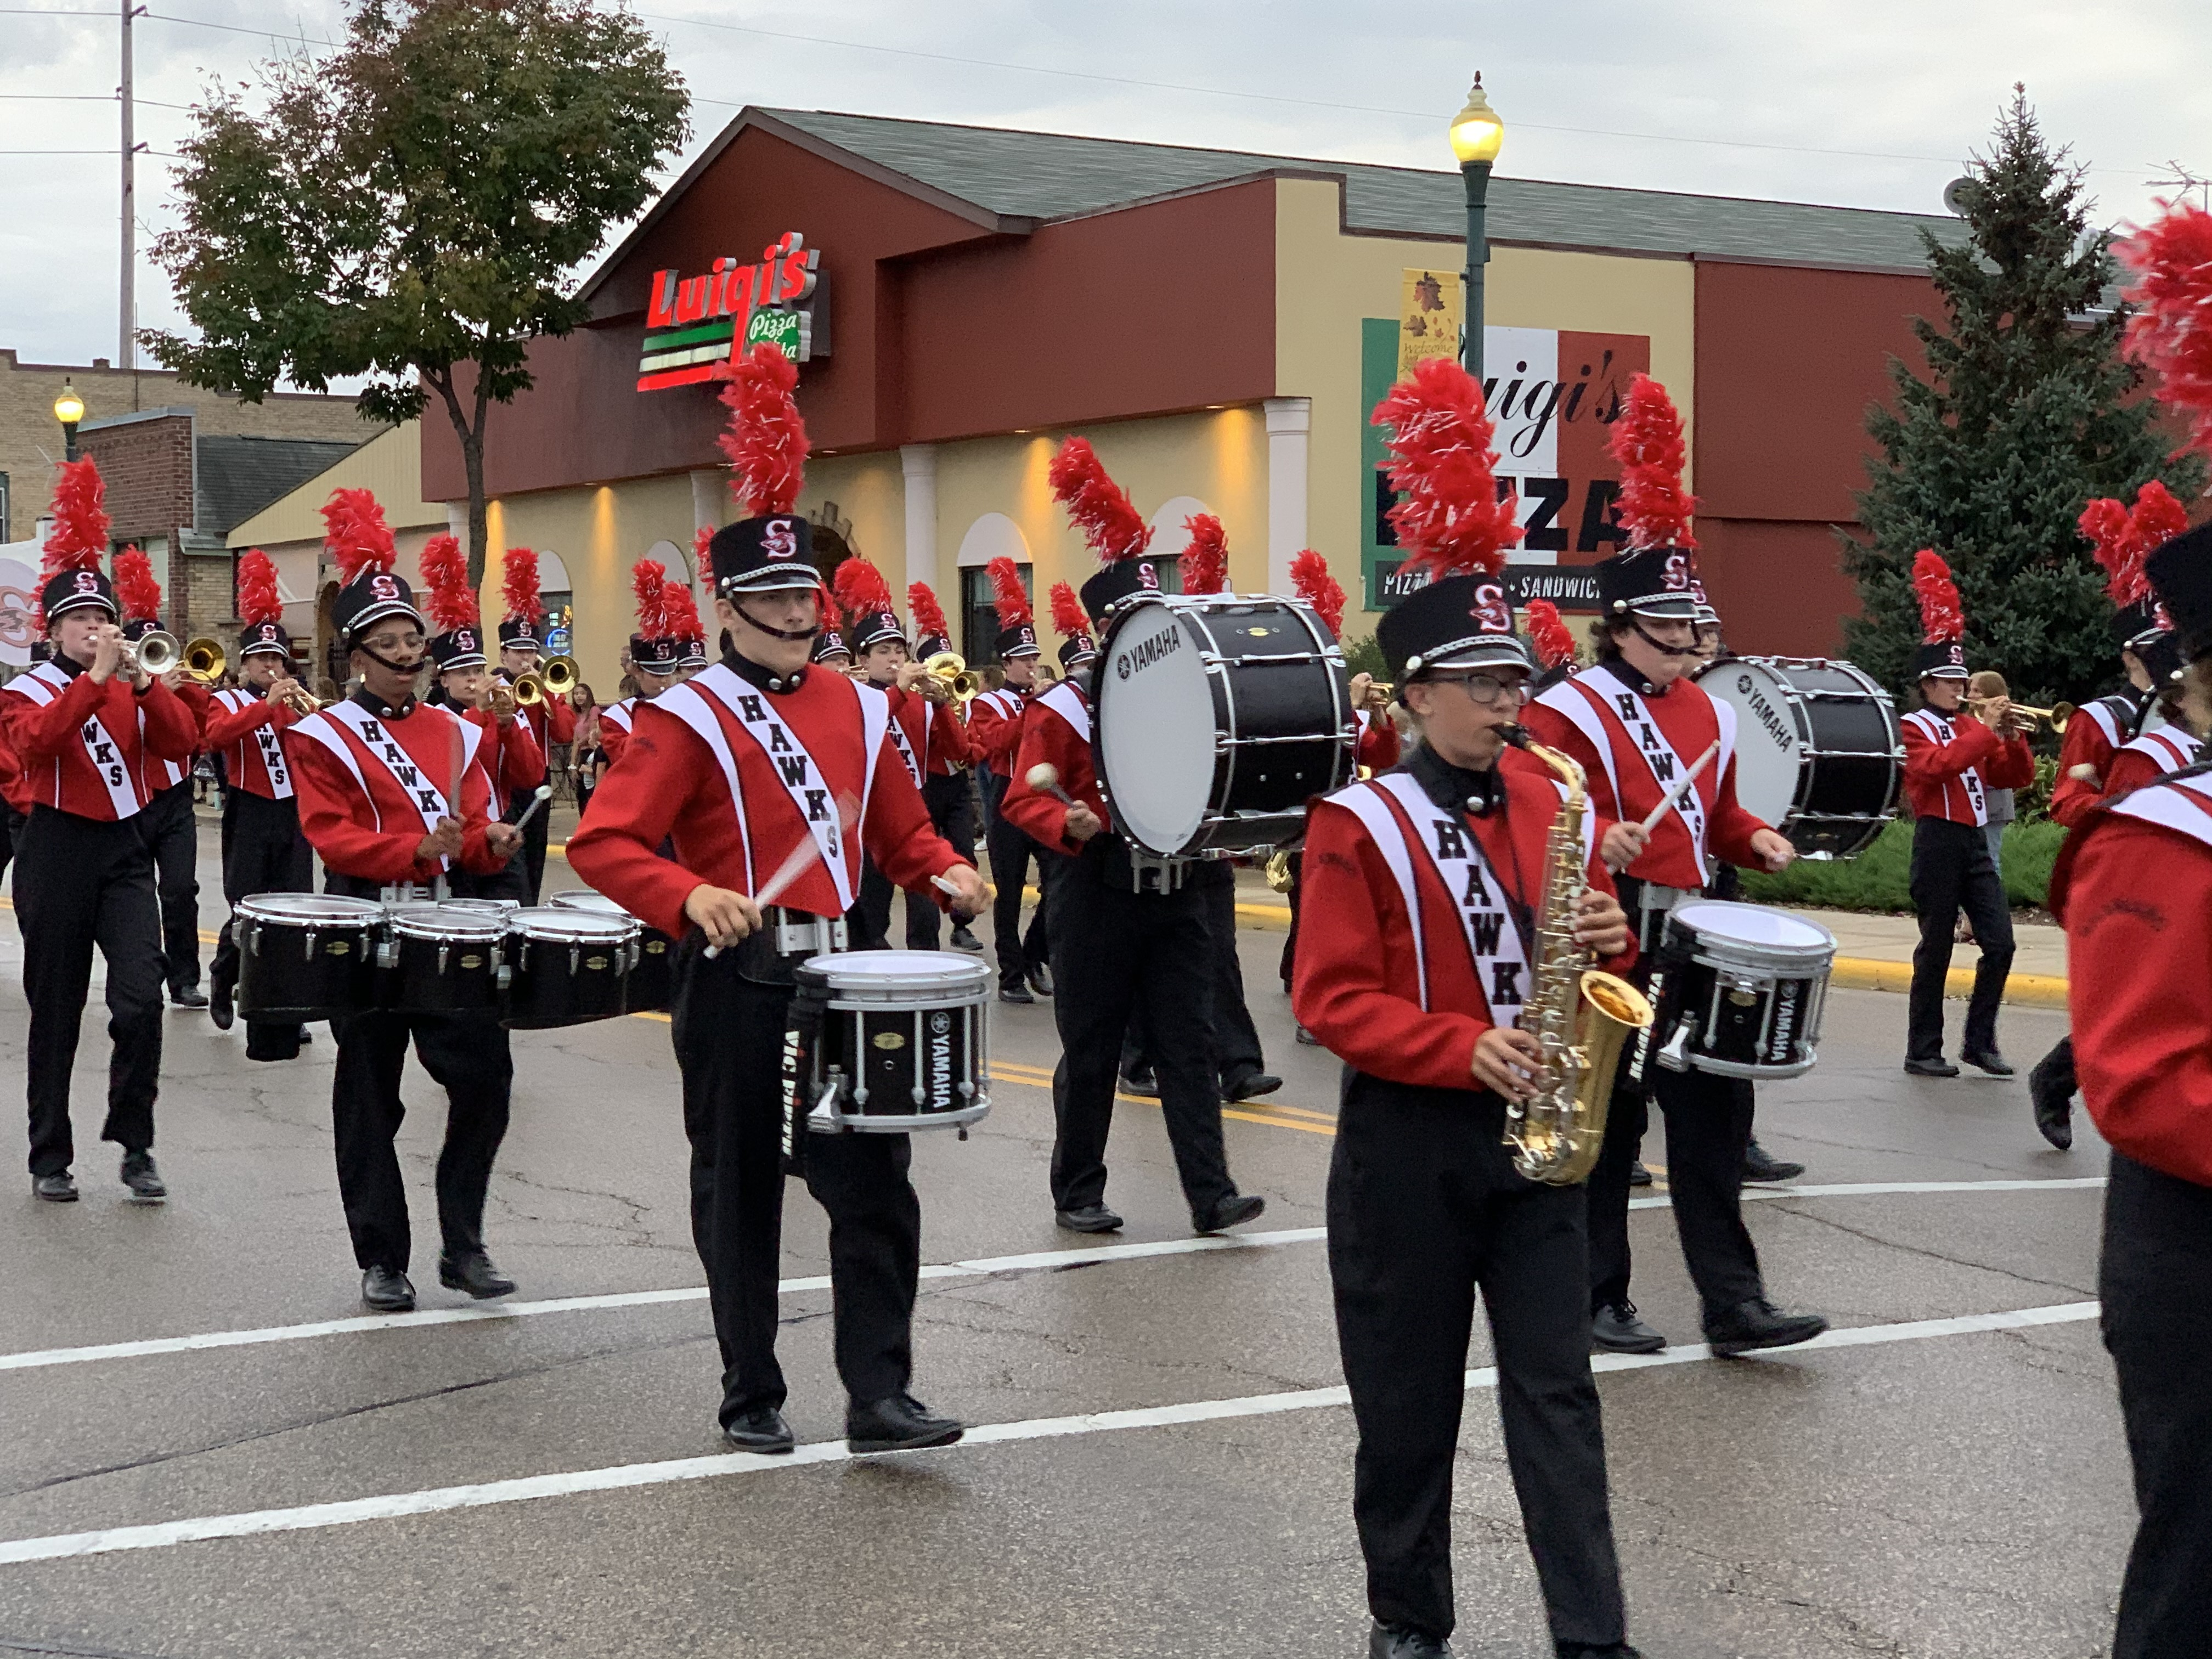 Members of the Shawano Community High School band provide visitors with music as they march down Main Street in Shawano on Sept. 24.Luke Reimer   NEW Media